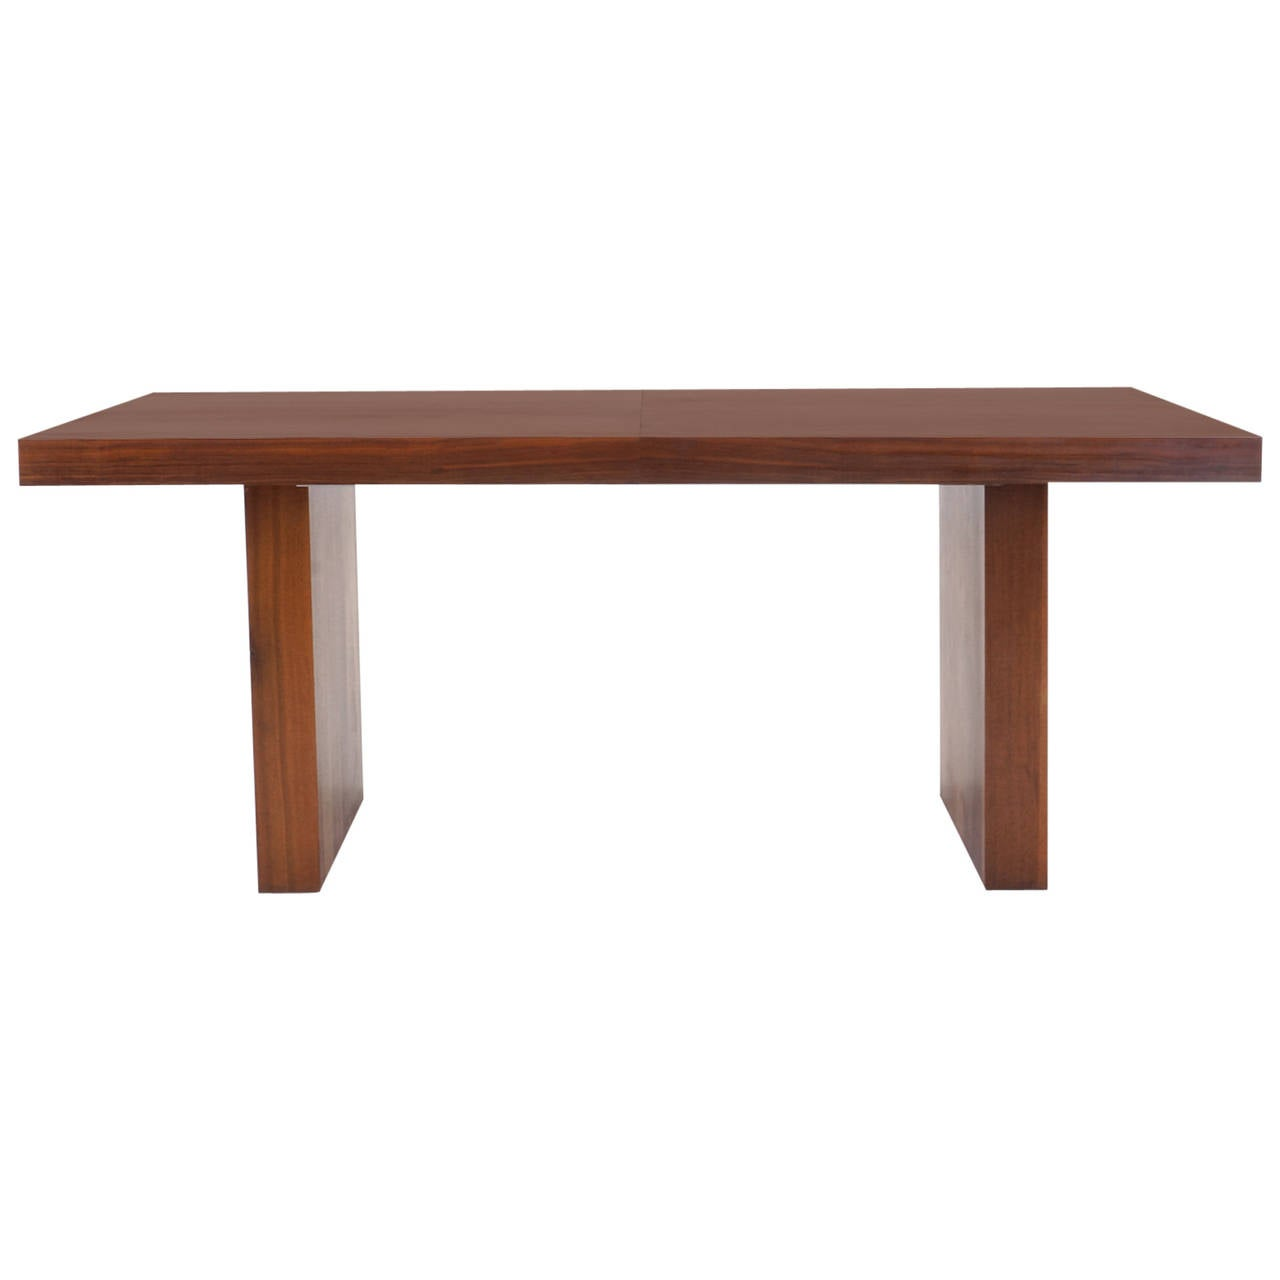 Milo Baughman Dining Table Extends To 9 Feet At 1stdibs